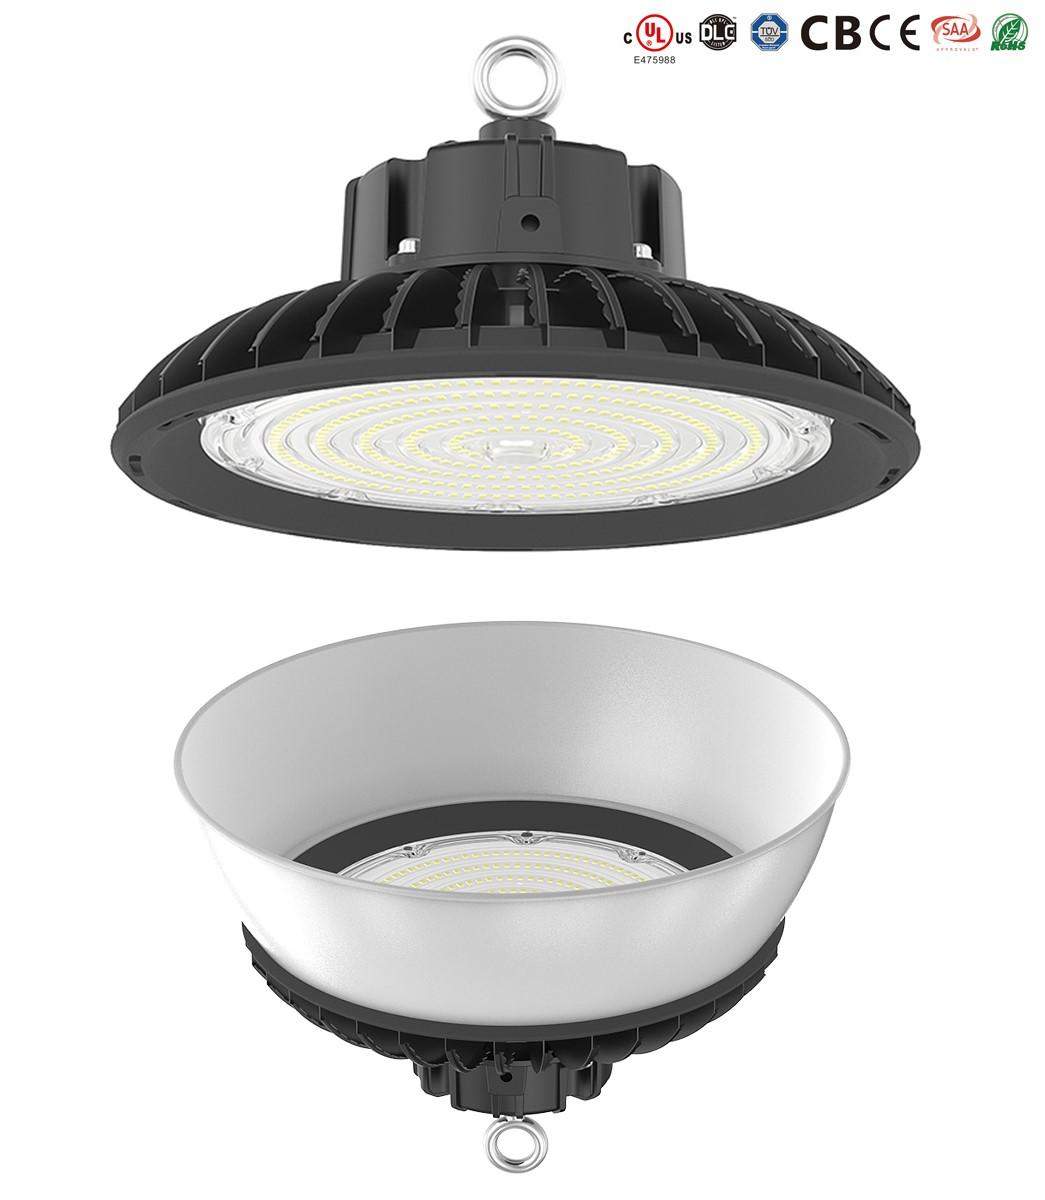 newest led high bay light design with longer lifespan for warehouses-1